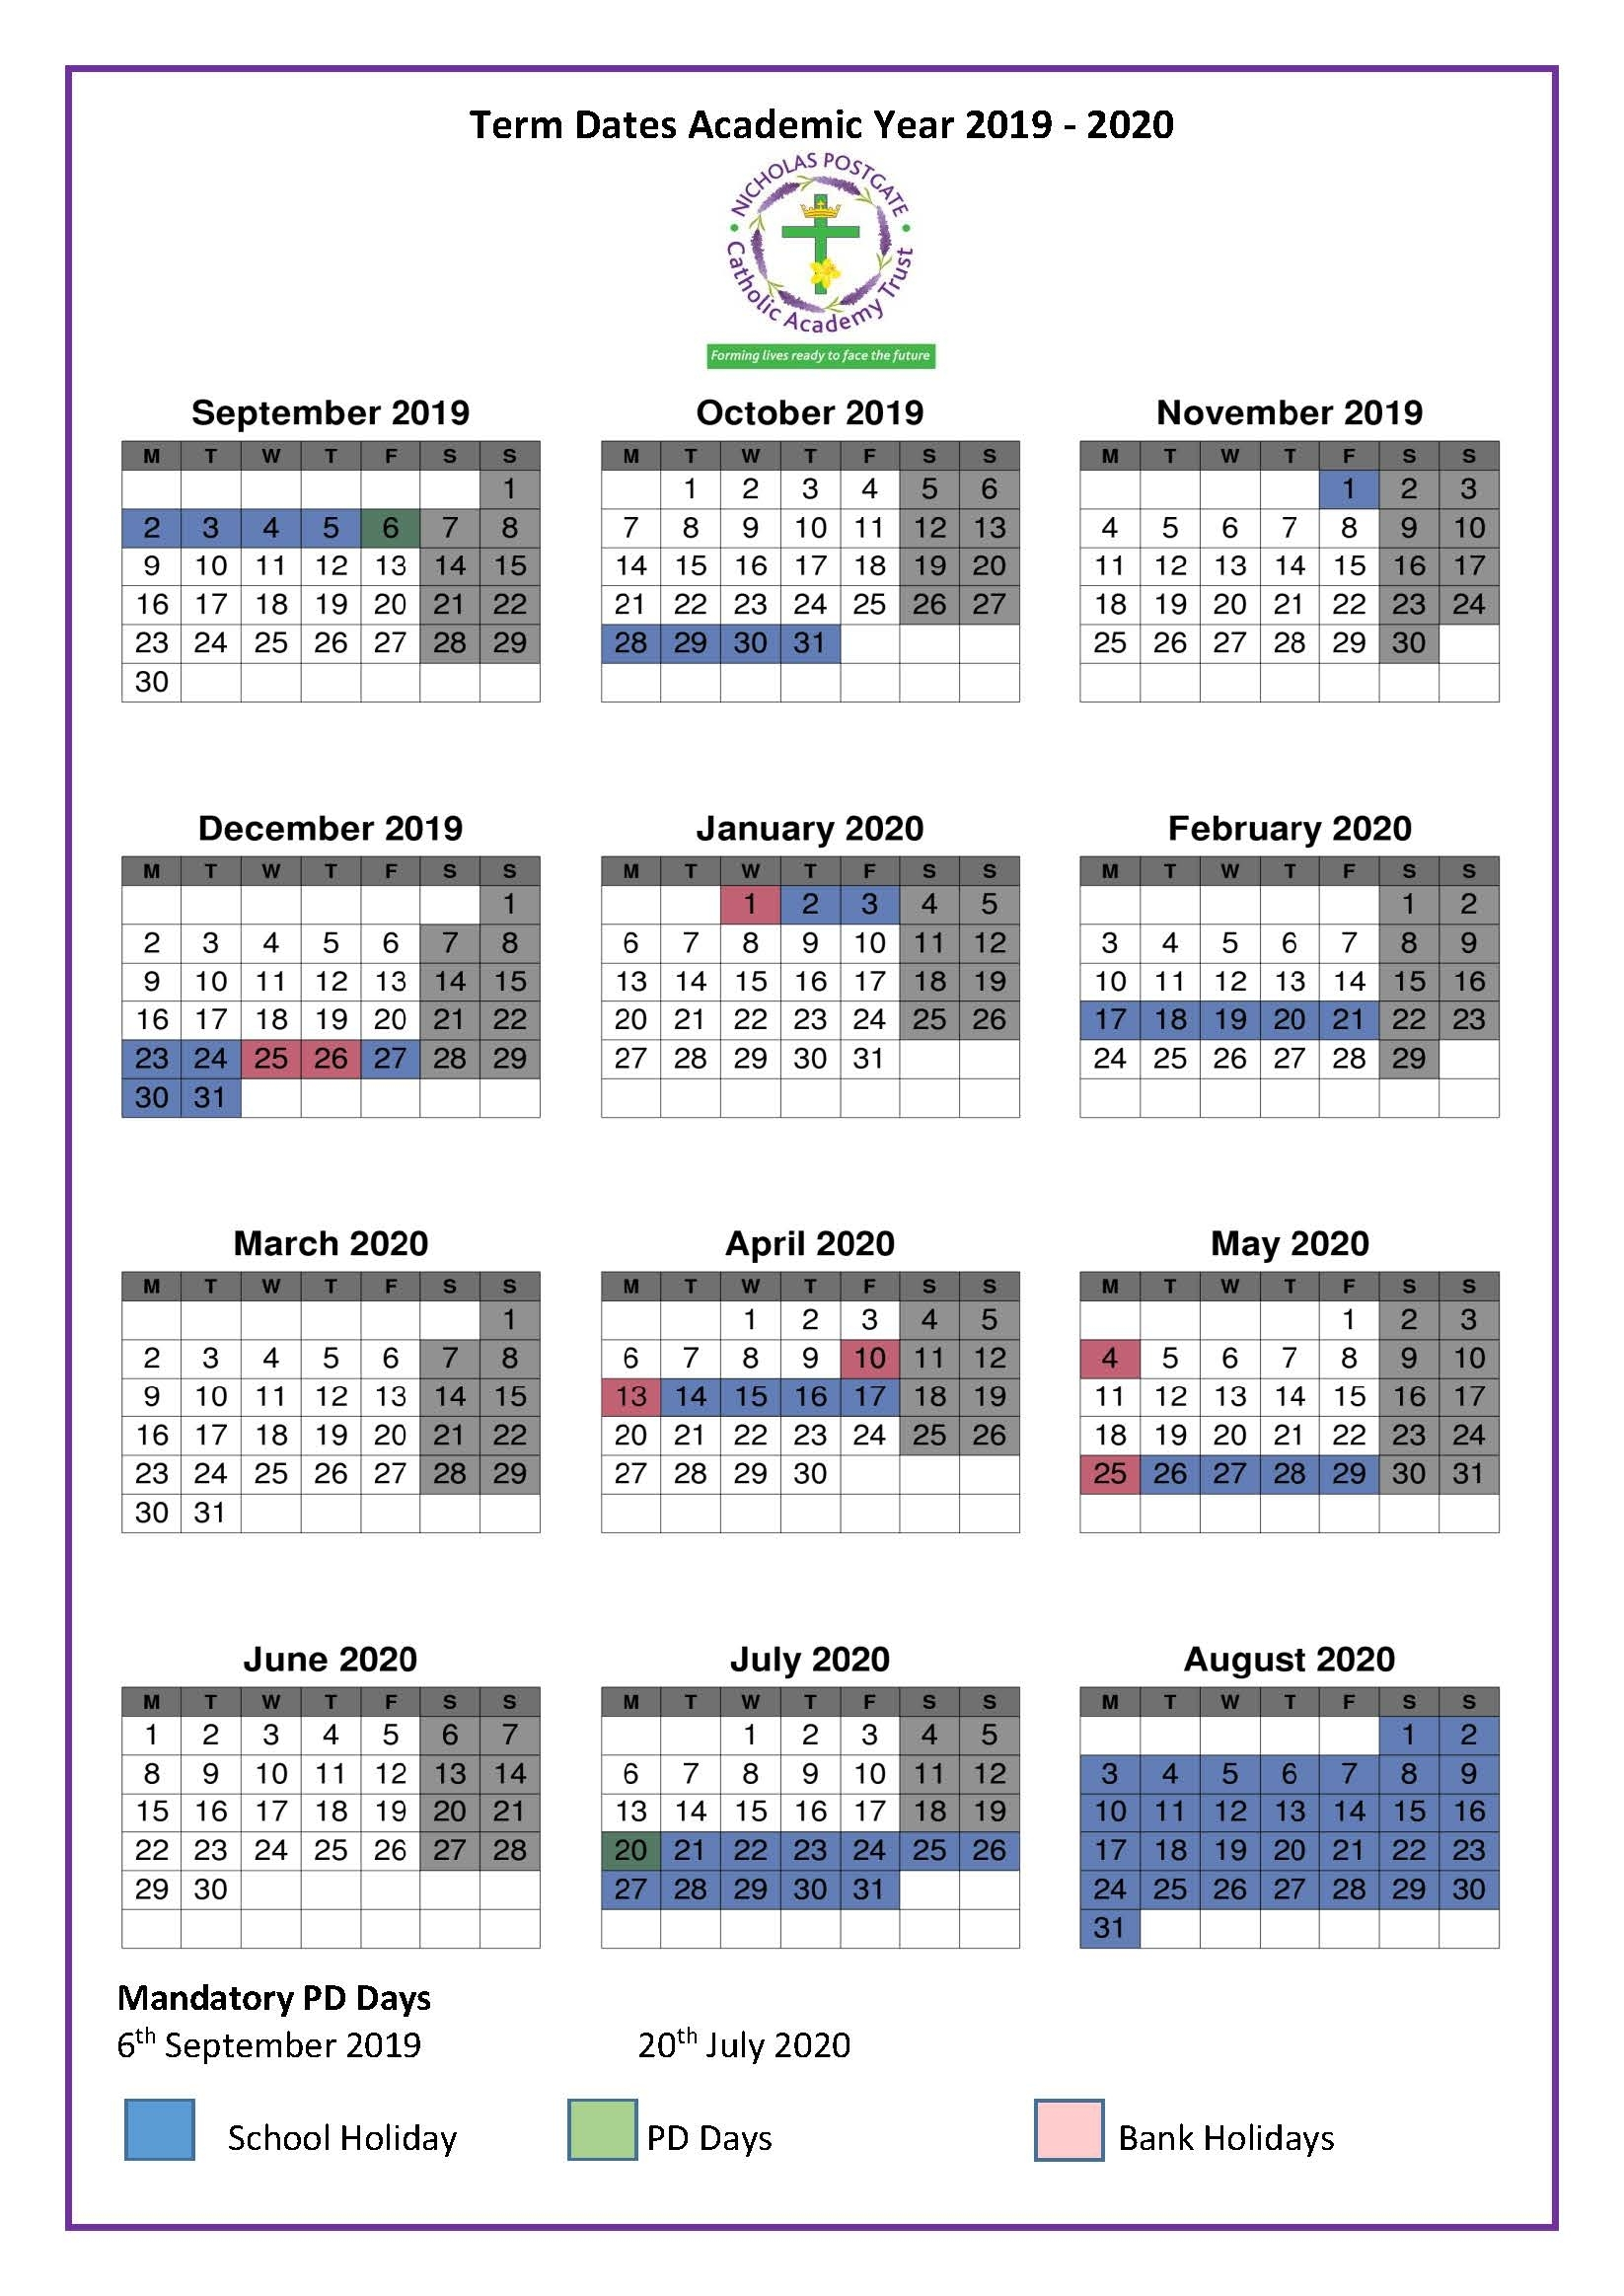 Term Dates 2019-2020 | St. Edward'S Catholic Primary School within School Calendar For Pshe Events 2019-2020